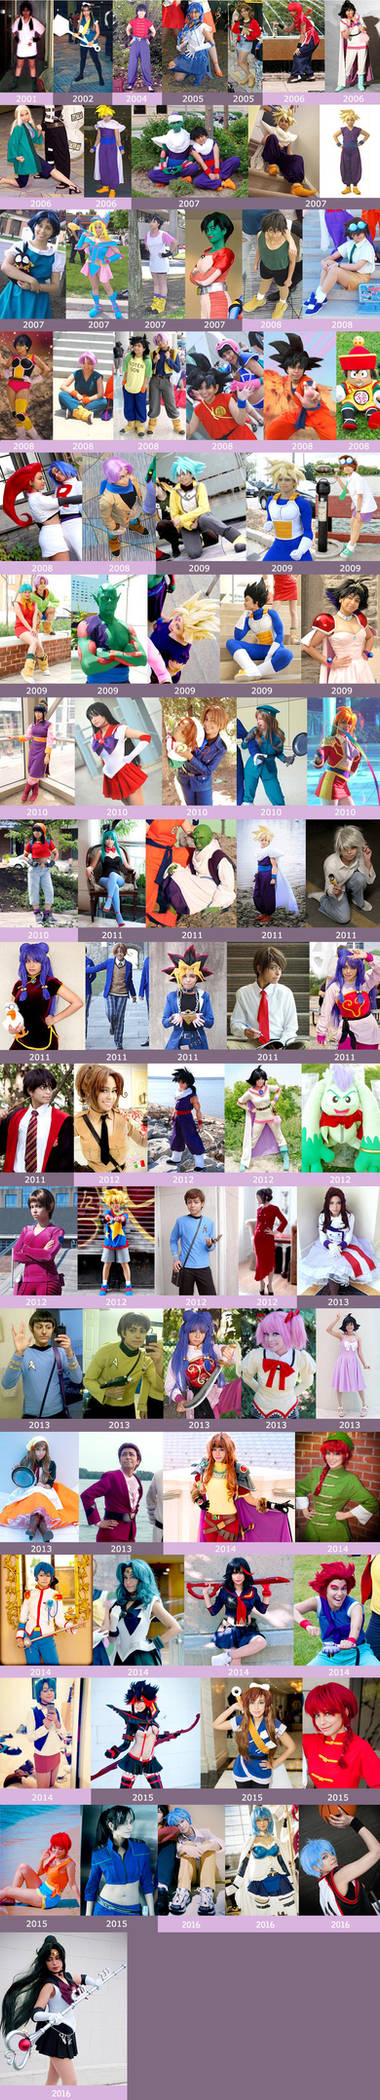 Techno's Cosplay Collage